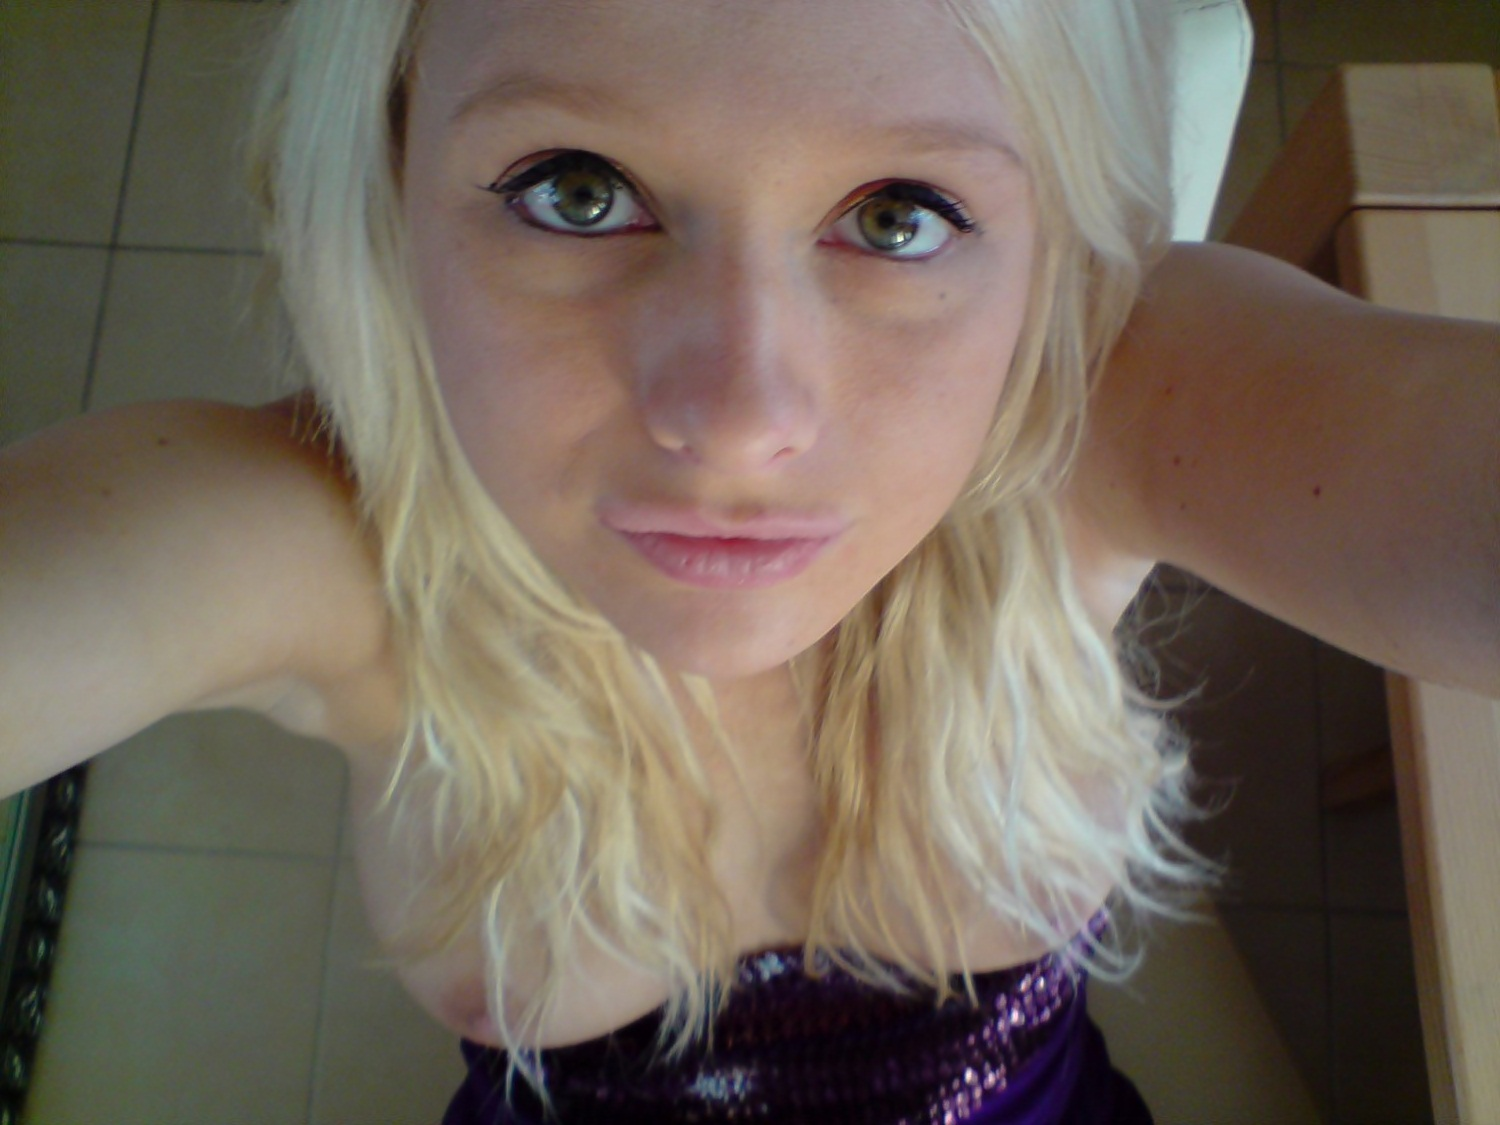 ... lucky and someone will call with a teacher and teen phone sex roleplay!